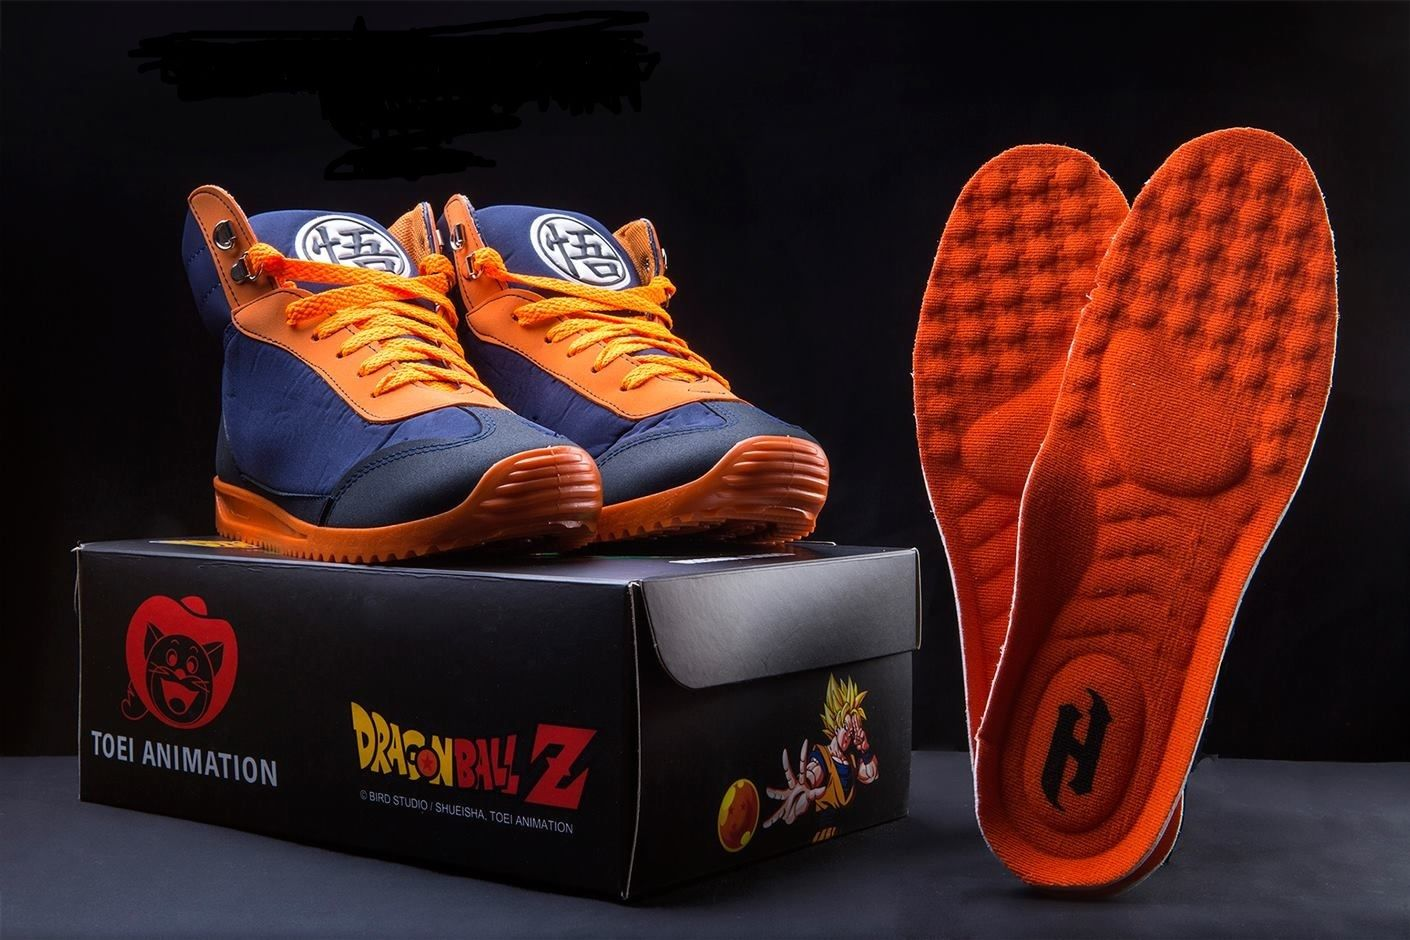 yes-there-are-actually-official-dragon-ball-z-sneakers-6-146906